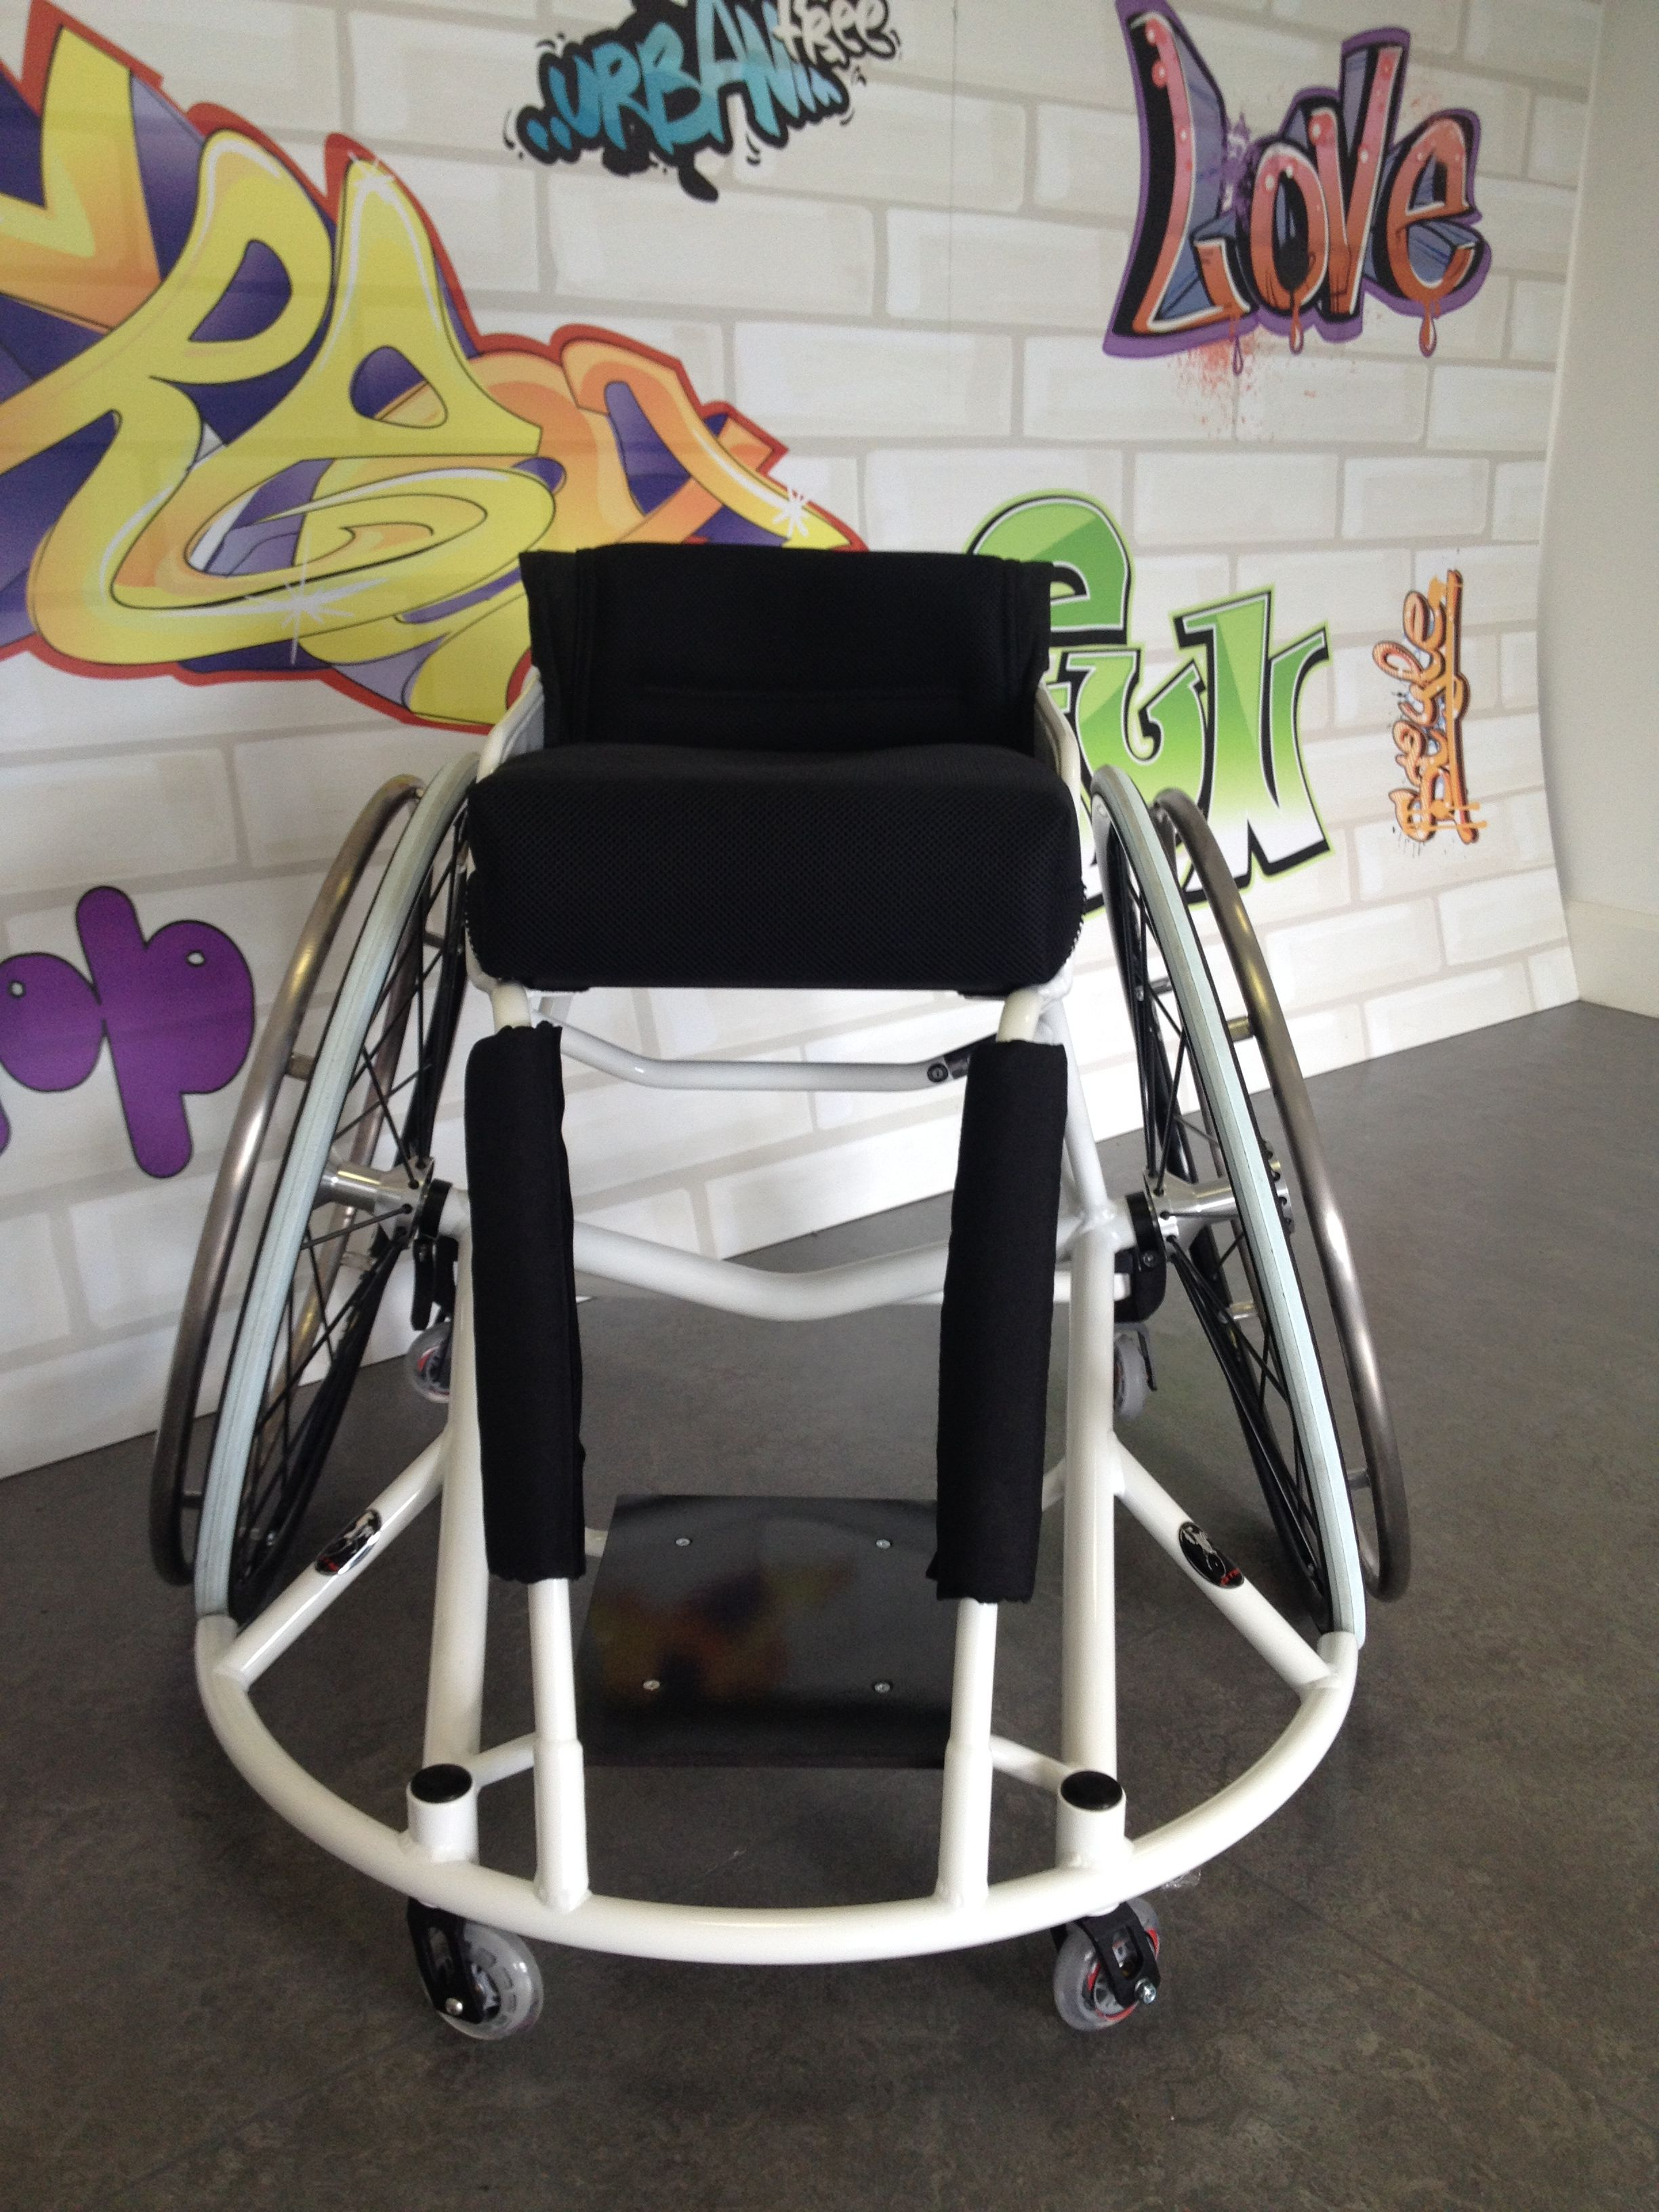 Wheelchair Hot Wheels Used Pedicure Chairs Gtm Gladiator Basketball From Momentum